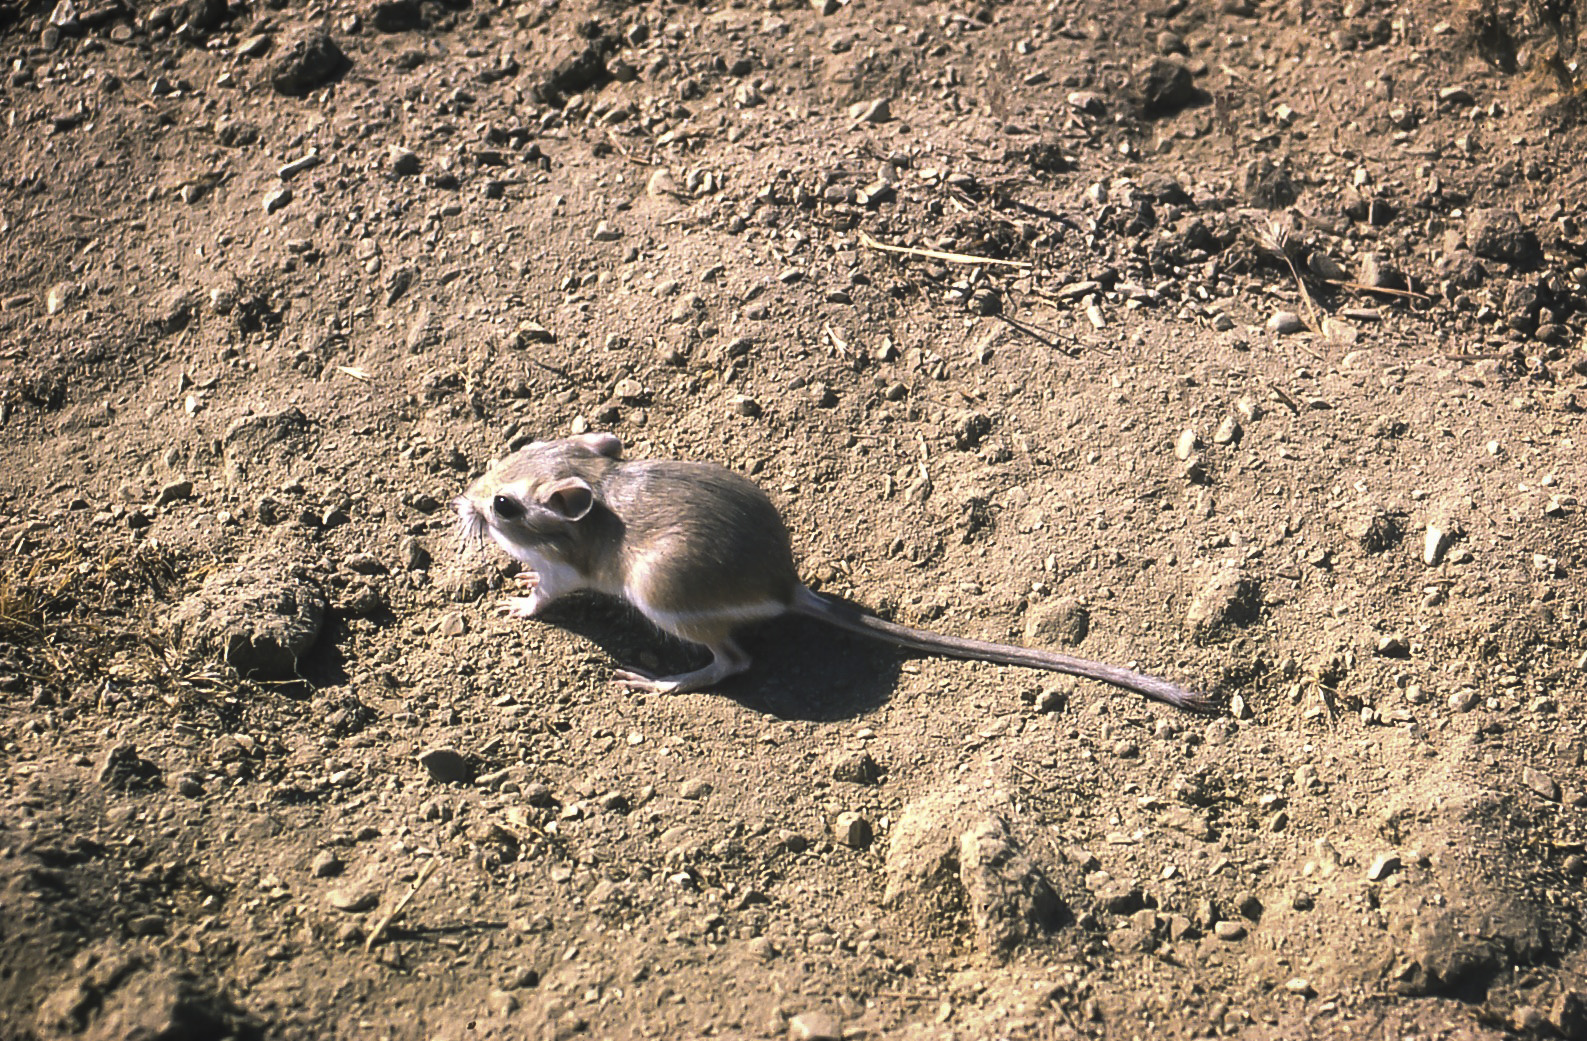 A kangaroo rat scurries across the dirt.